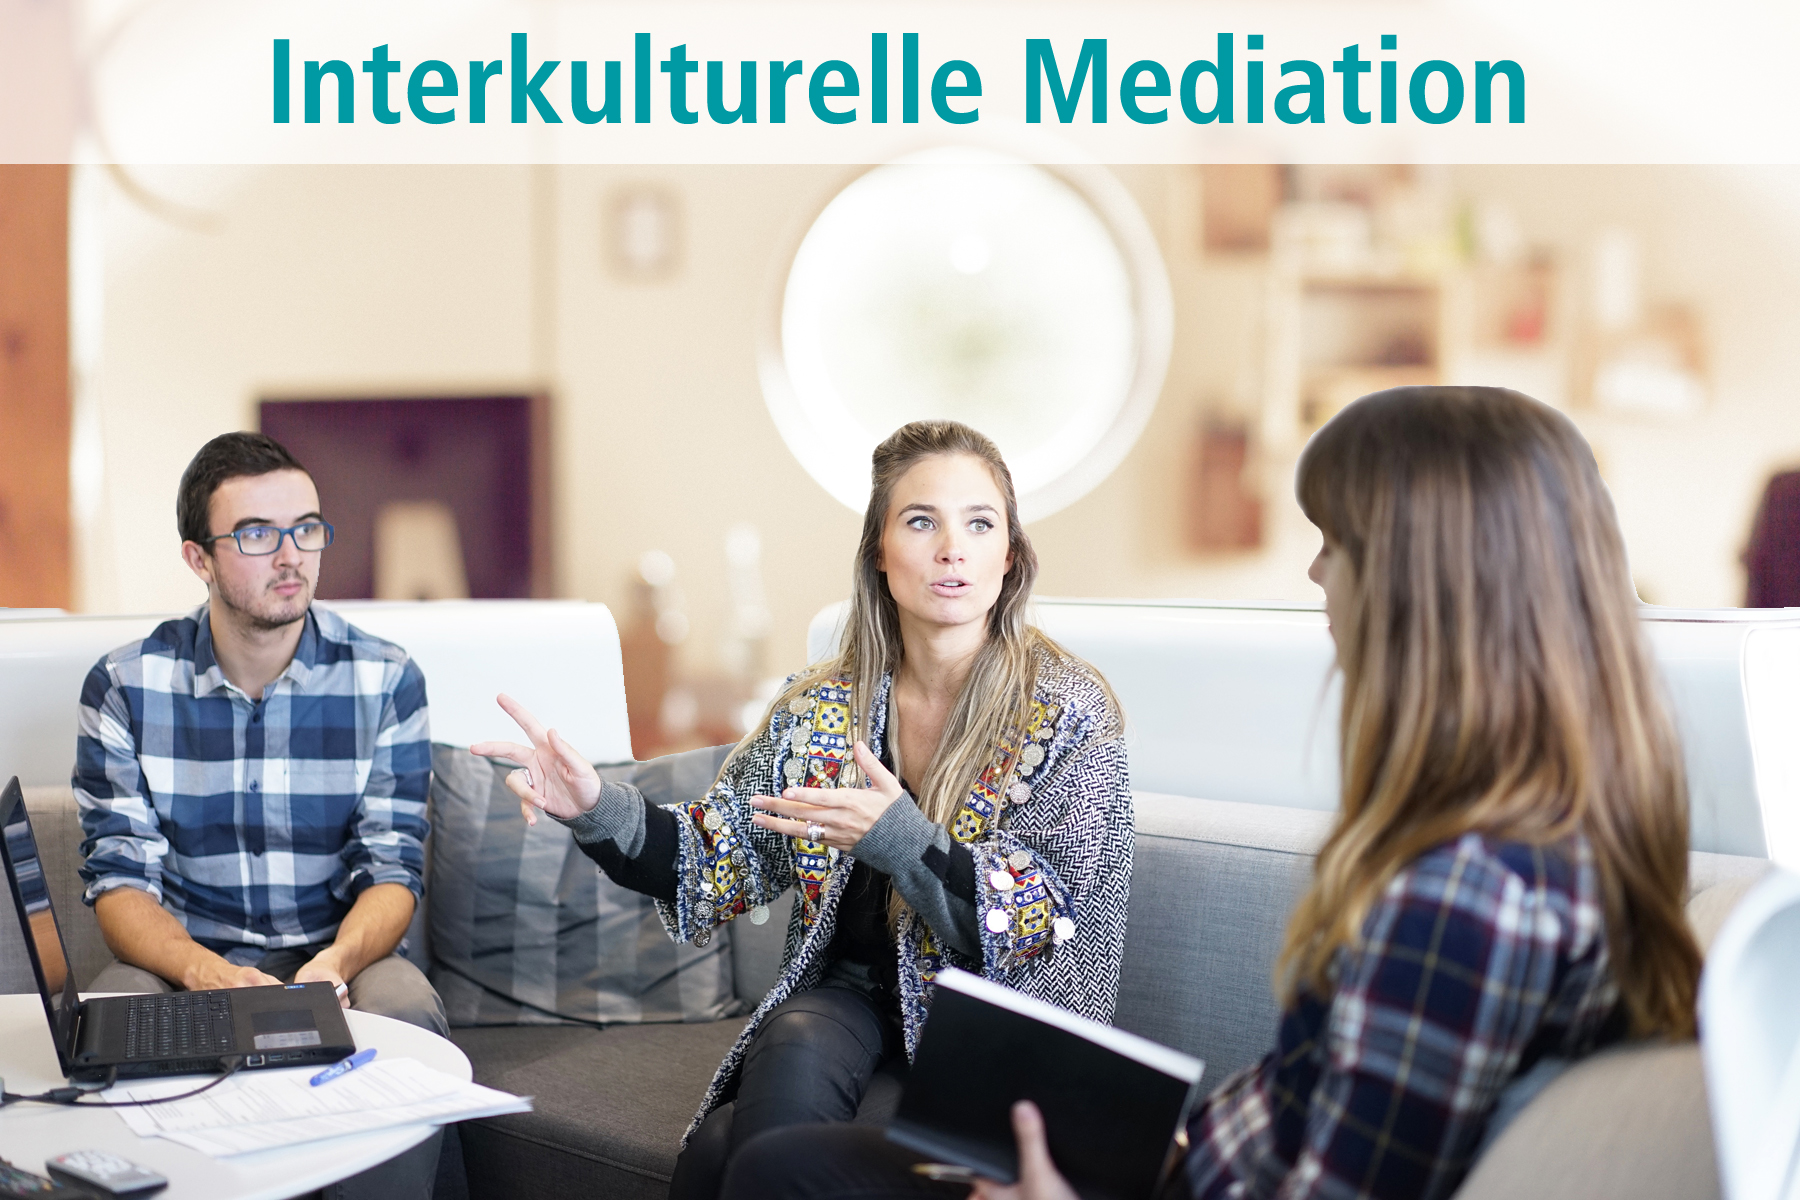 Interculture e.V. - IK Mediator